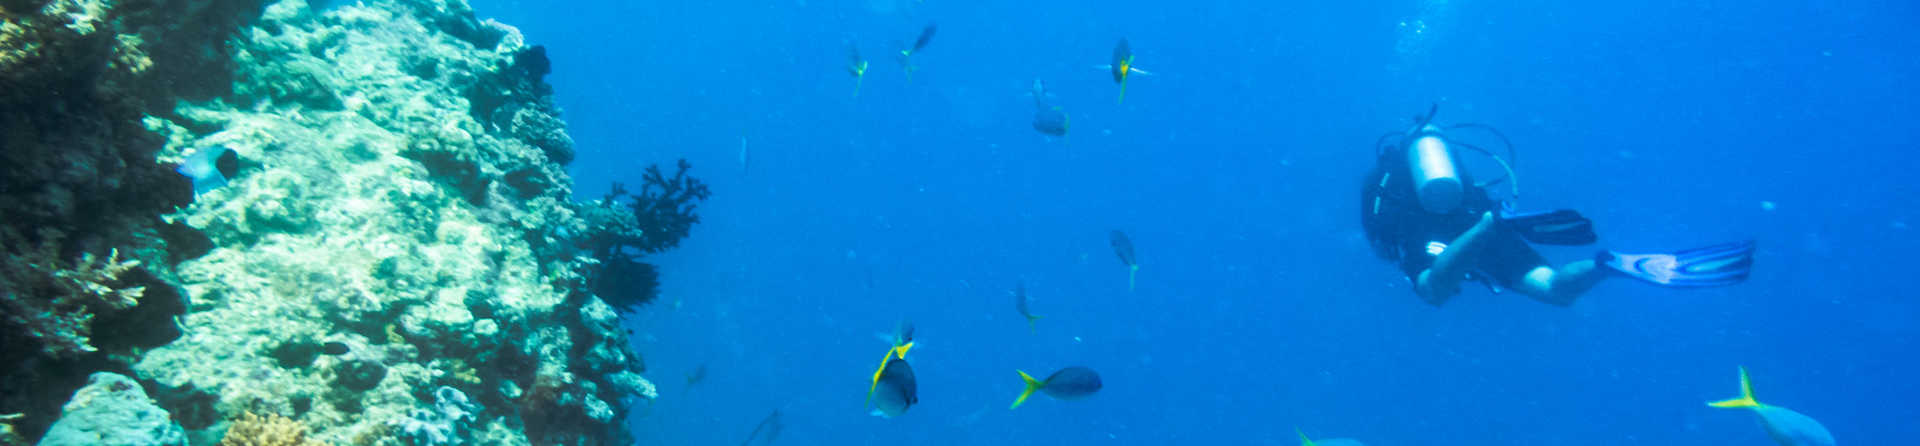 Is it better to dive or snorkel the Great Barrier Reef?